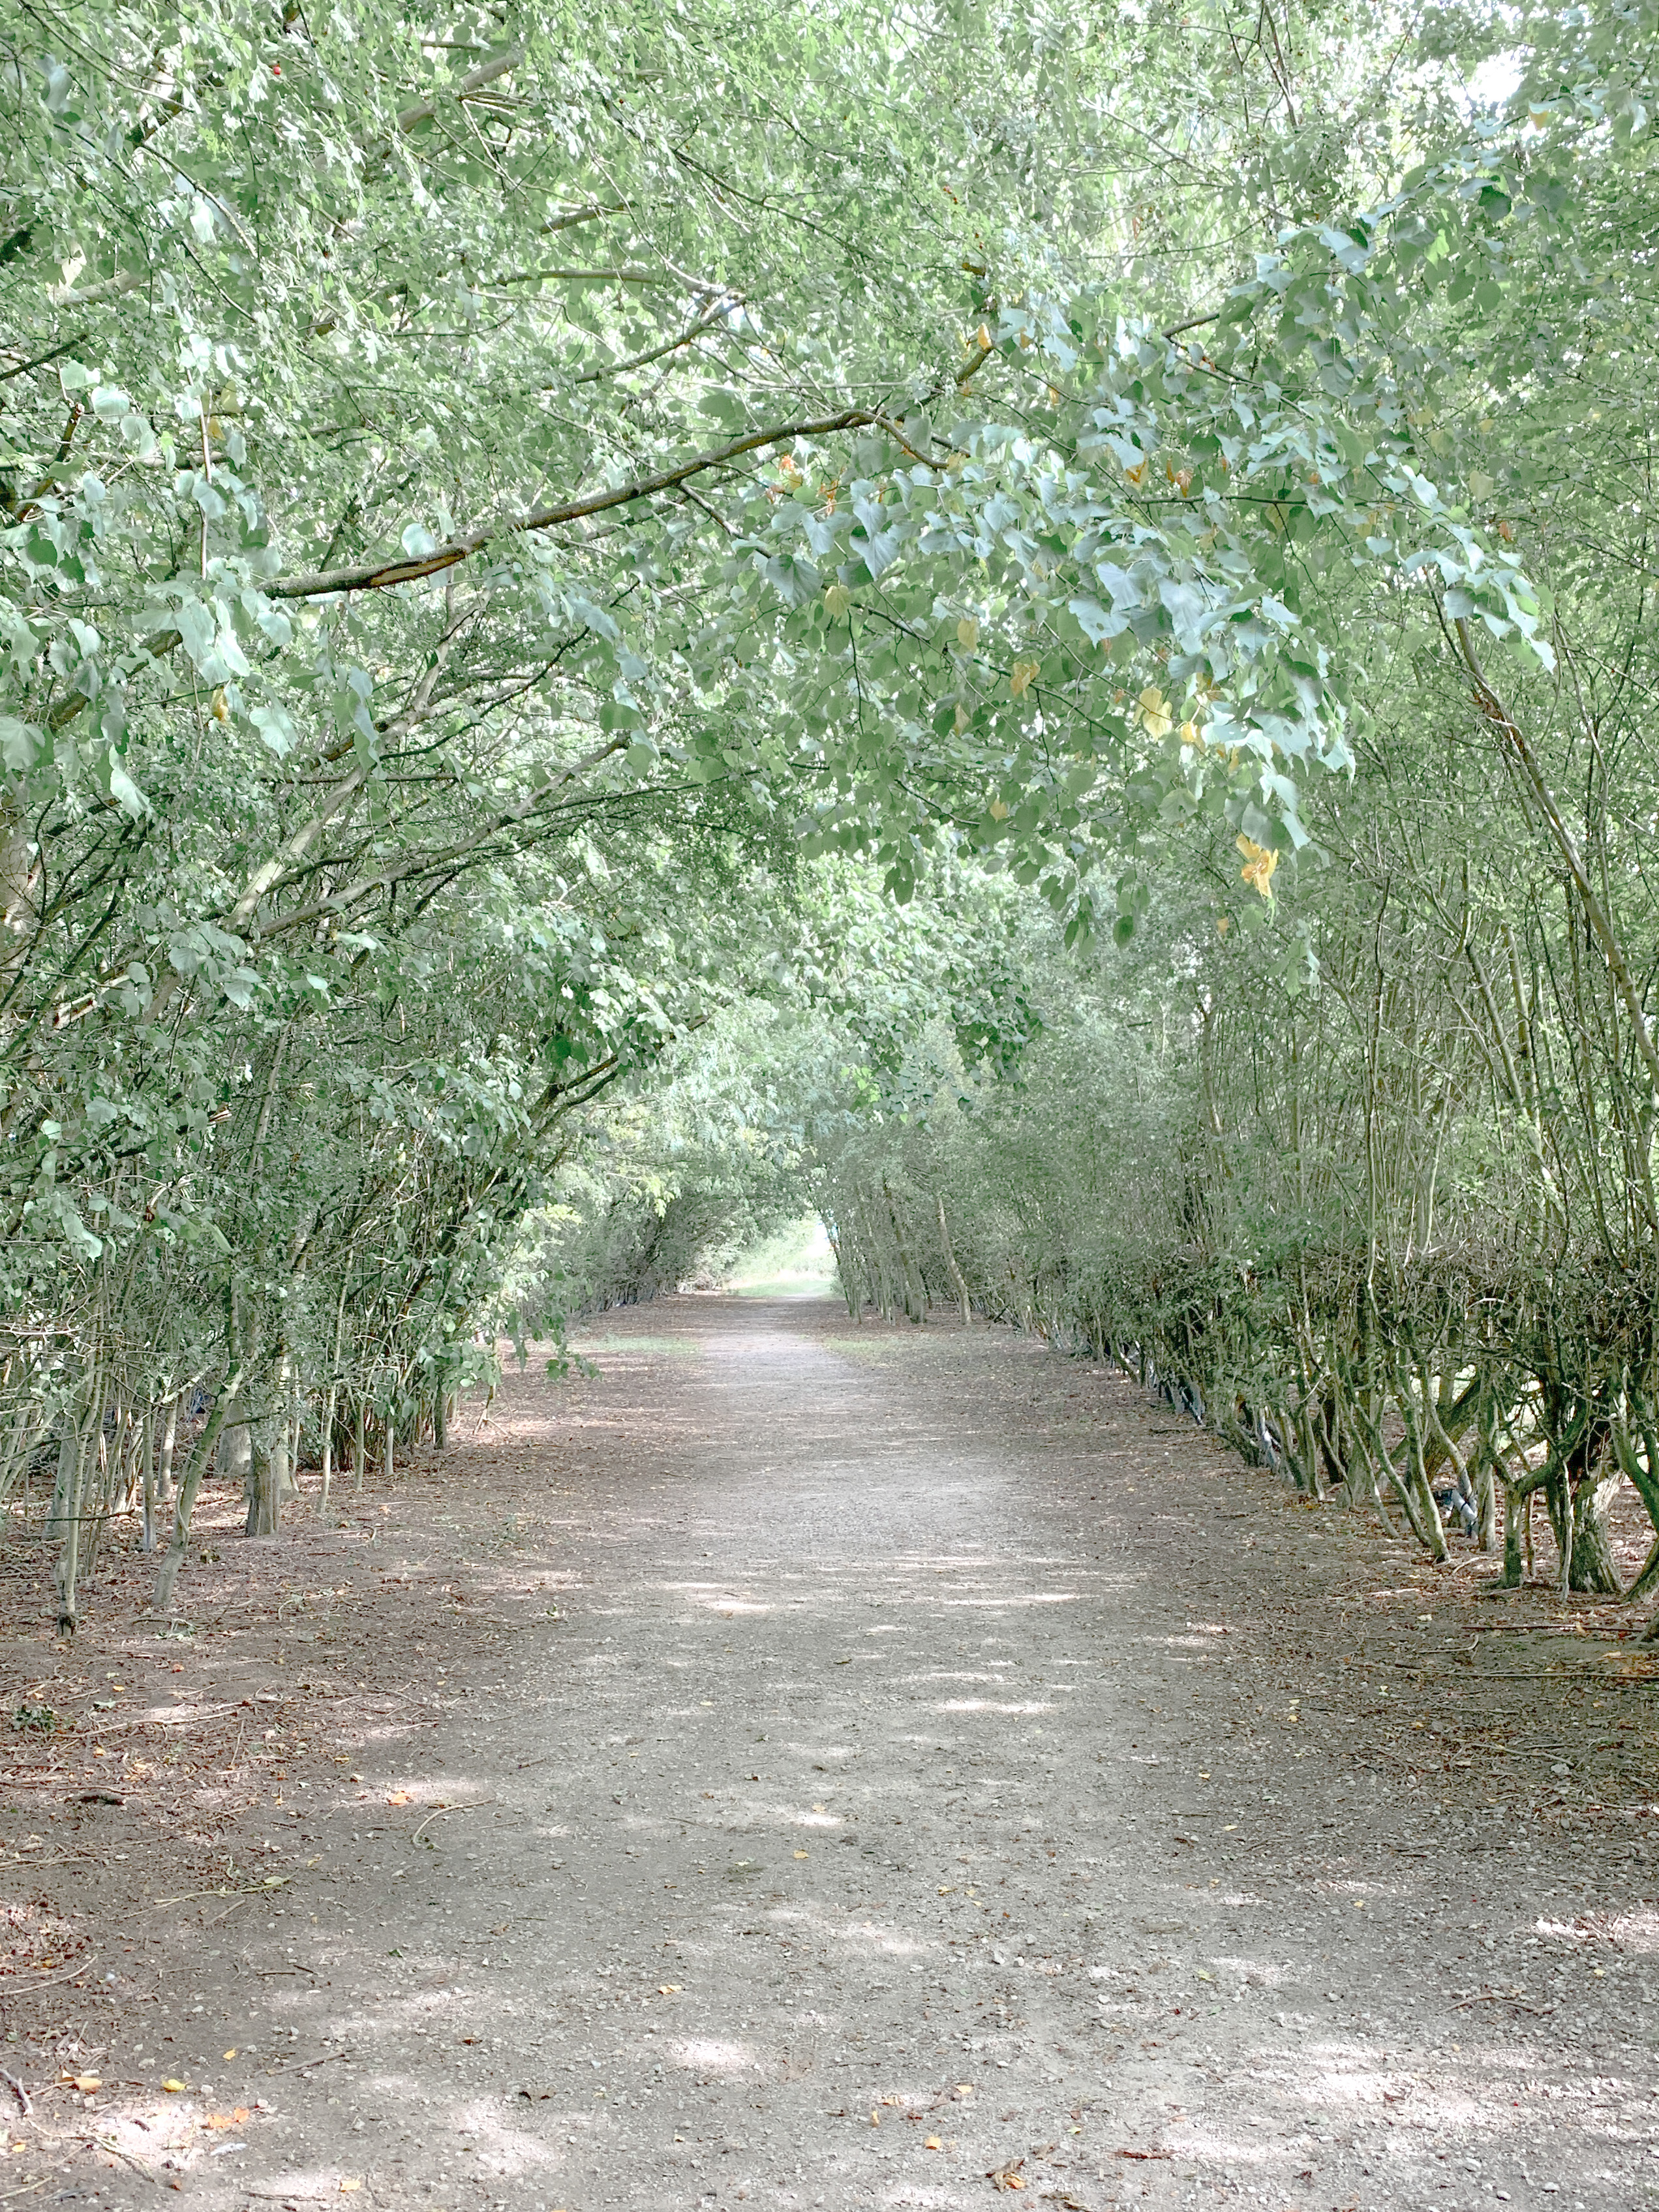 Long dusty road with big arching trees at both sides, arching over and creating a canopy with branches and leaves